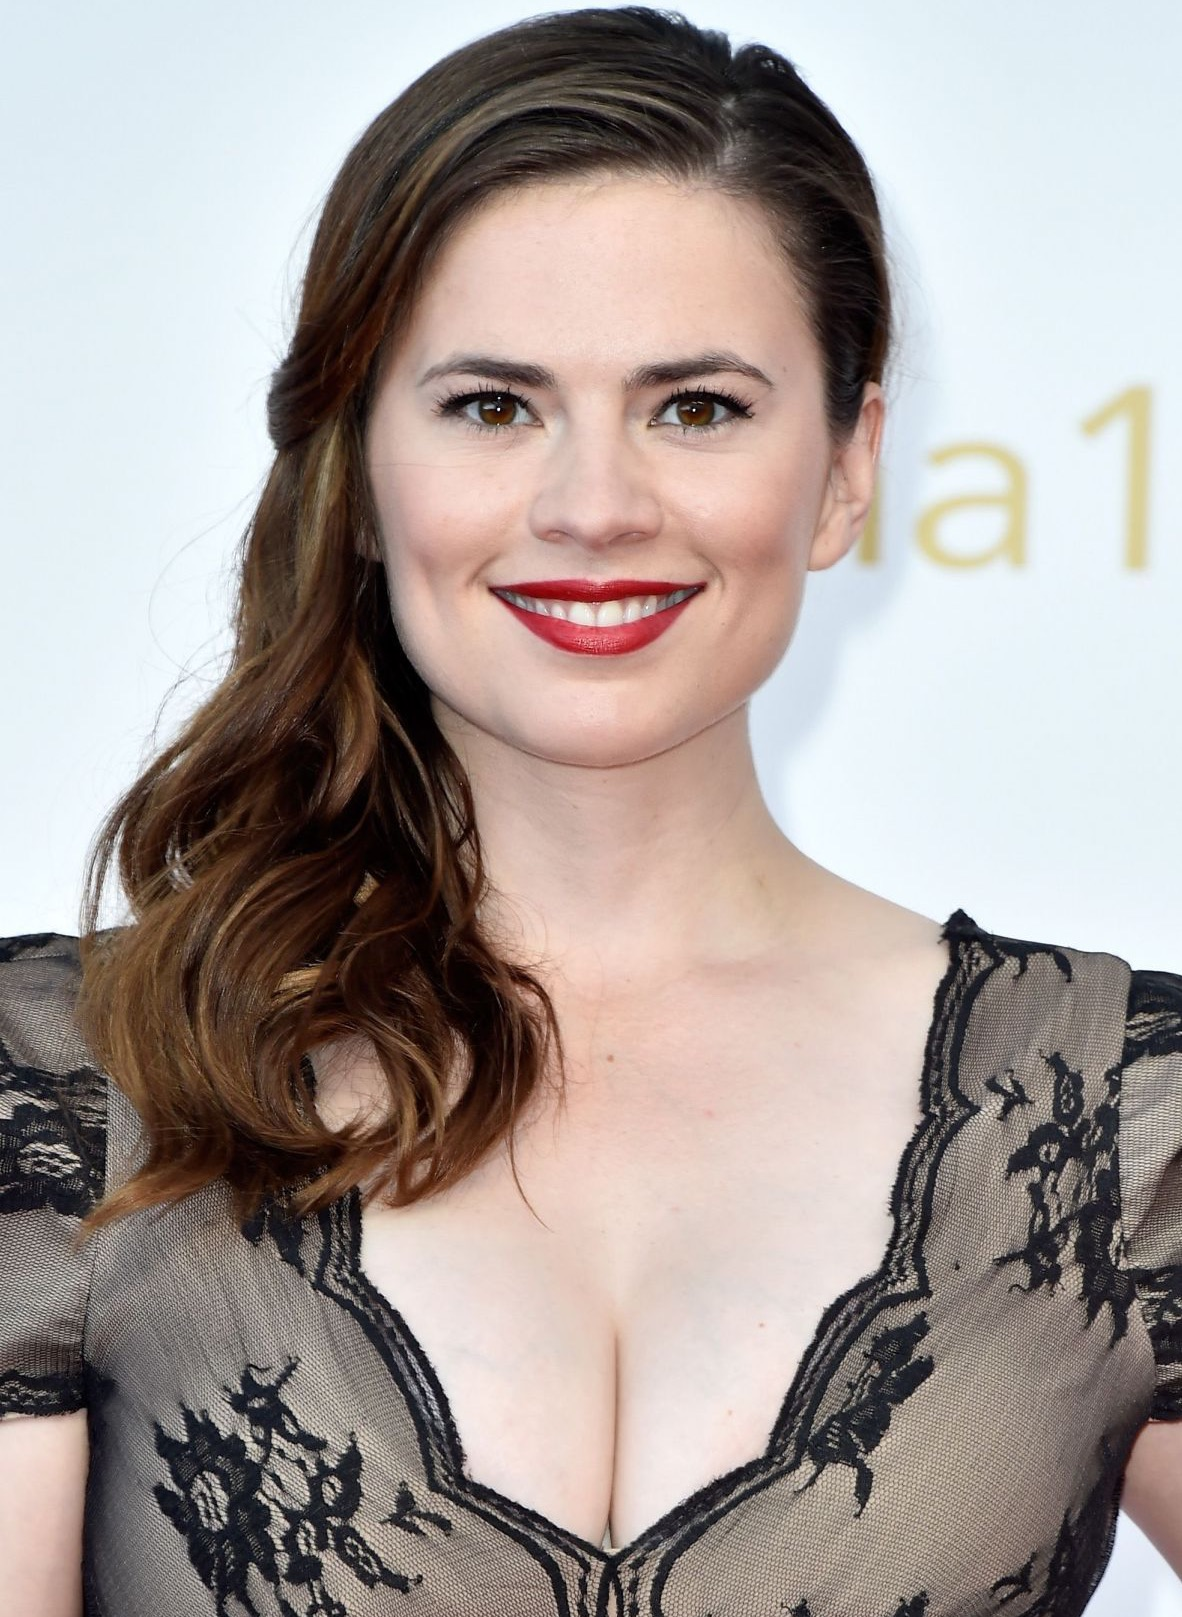 Hayley Atwell Hayley Atwell new images